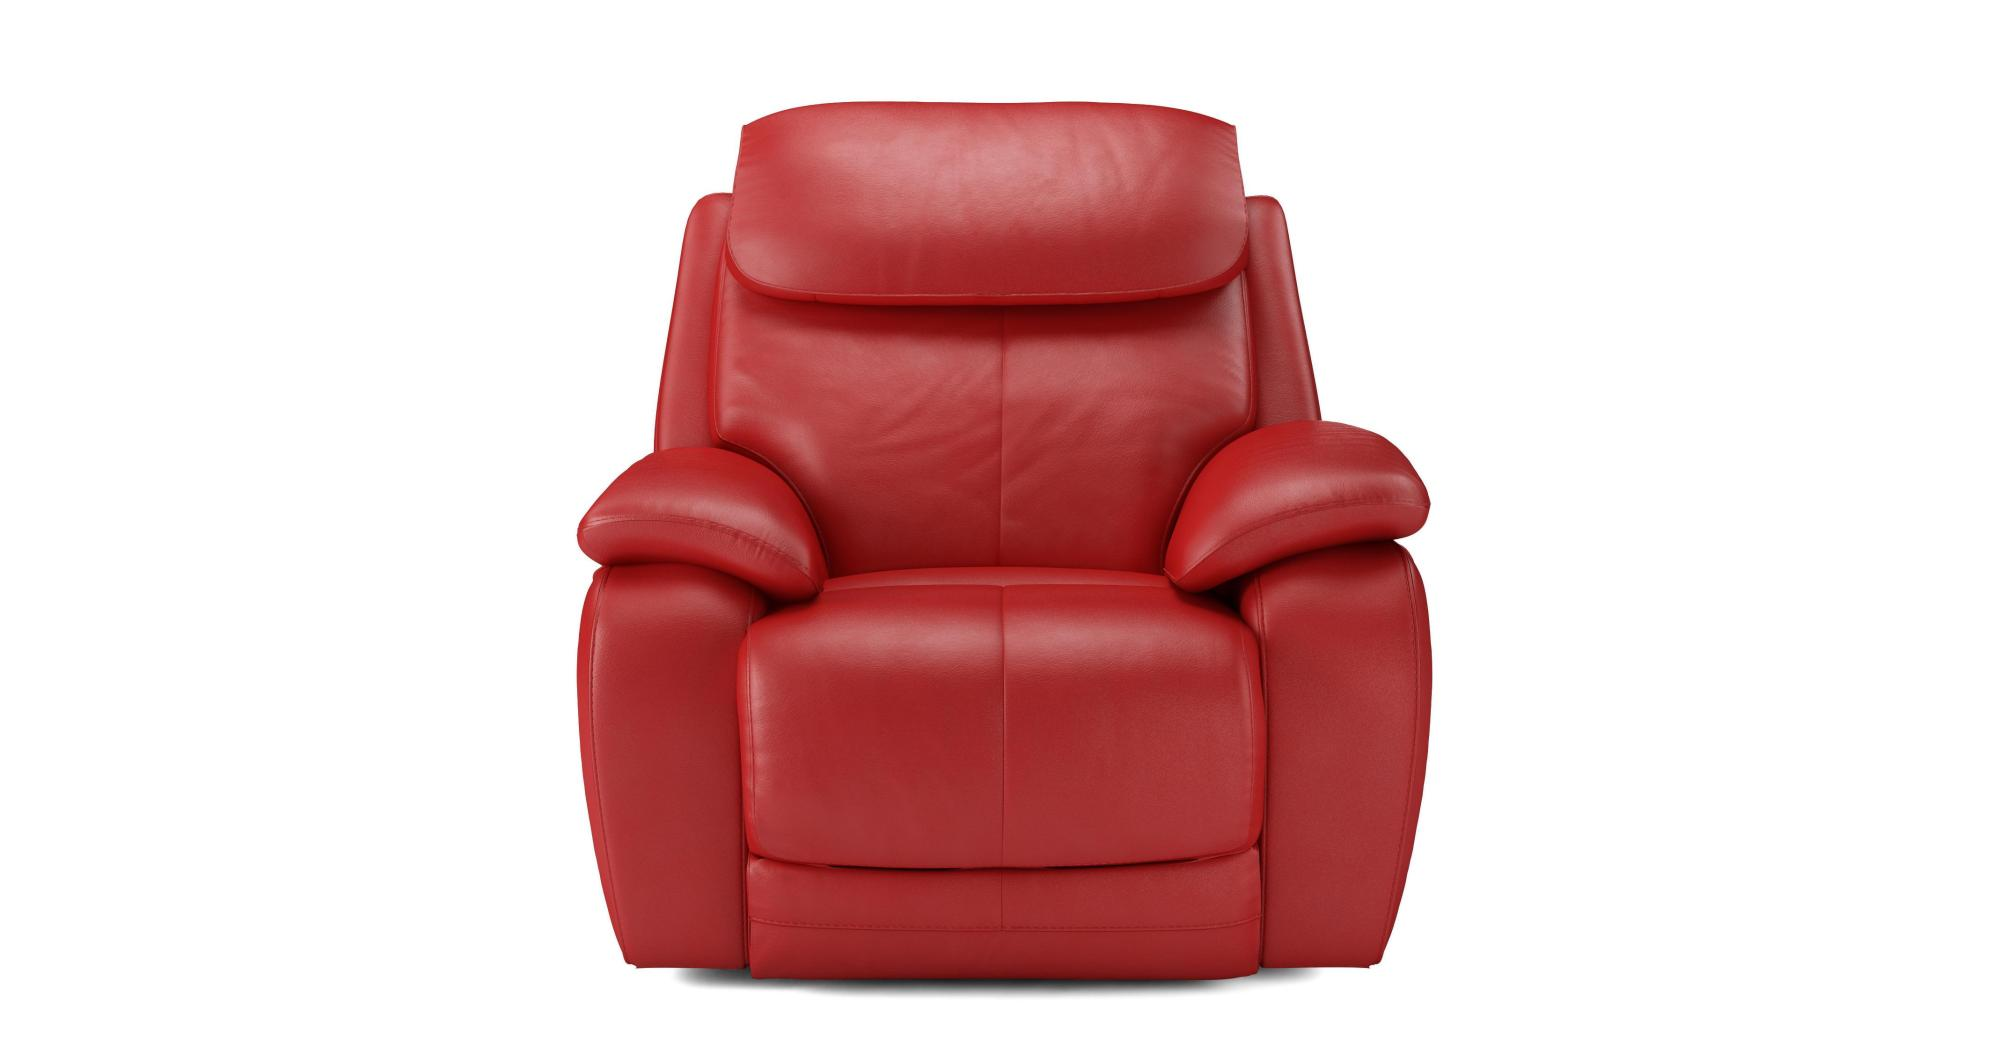 Electric Recliner Leather Chairs Dfs Daytona Rosso Red 100 Leather Electric Recliner Chair